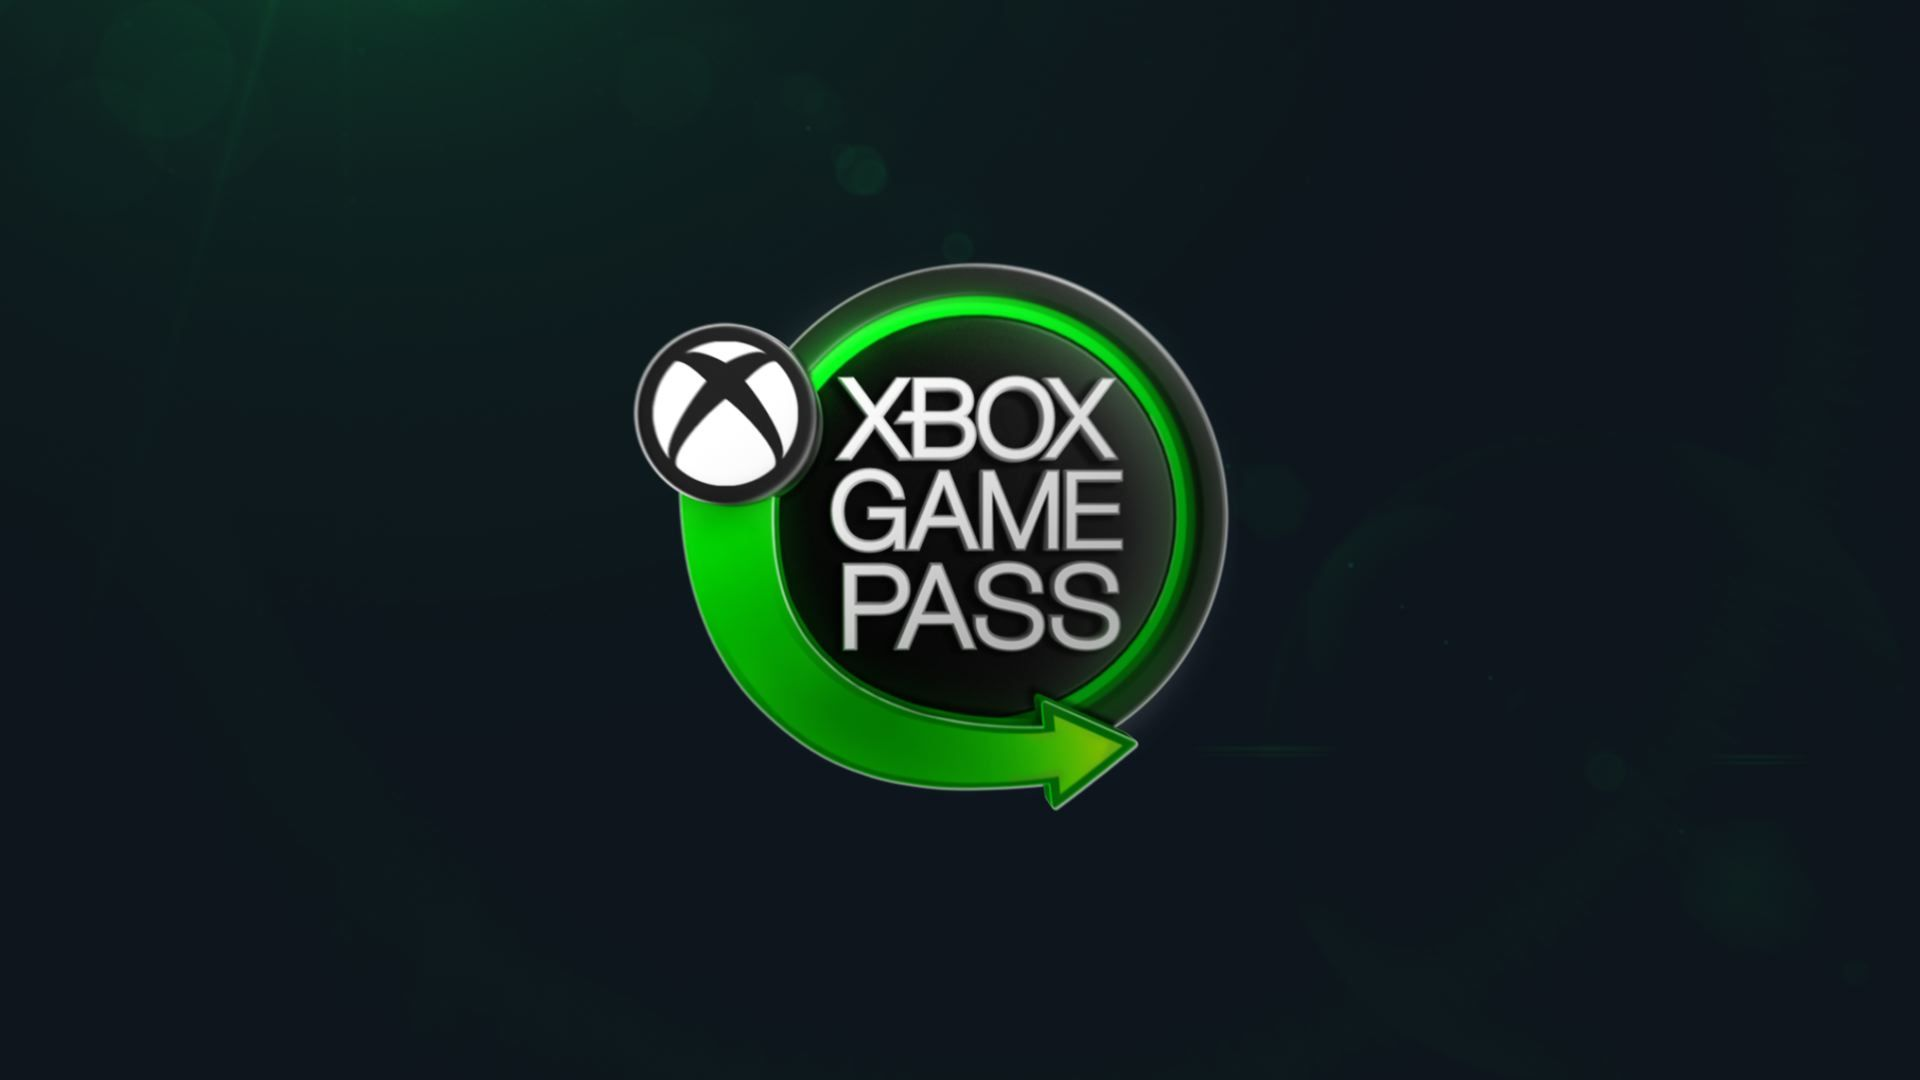 Microsoft's Phil Spencer Hints On A Big Game Pass Announcement Coming Soon – Halo Infinite Not Released Properly